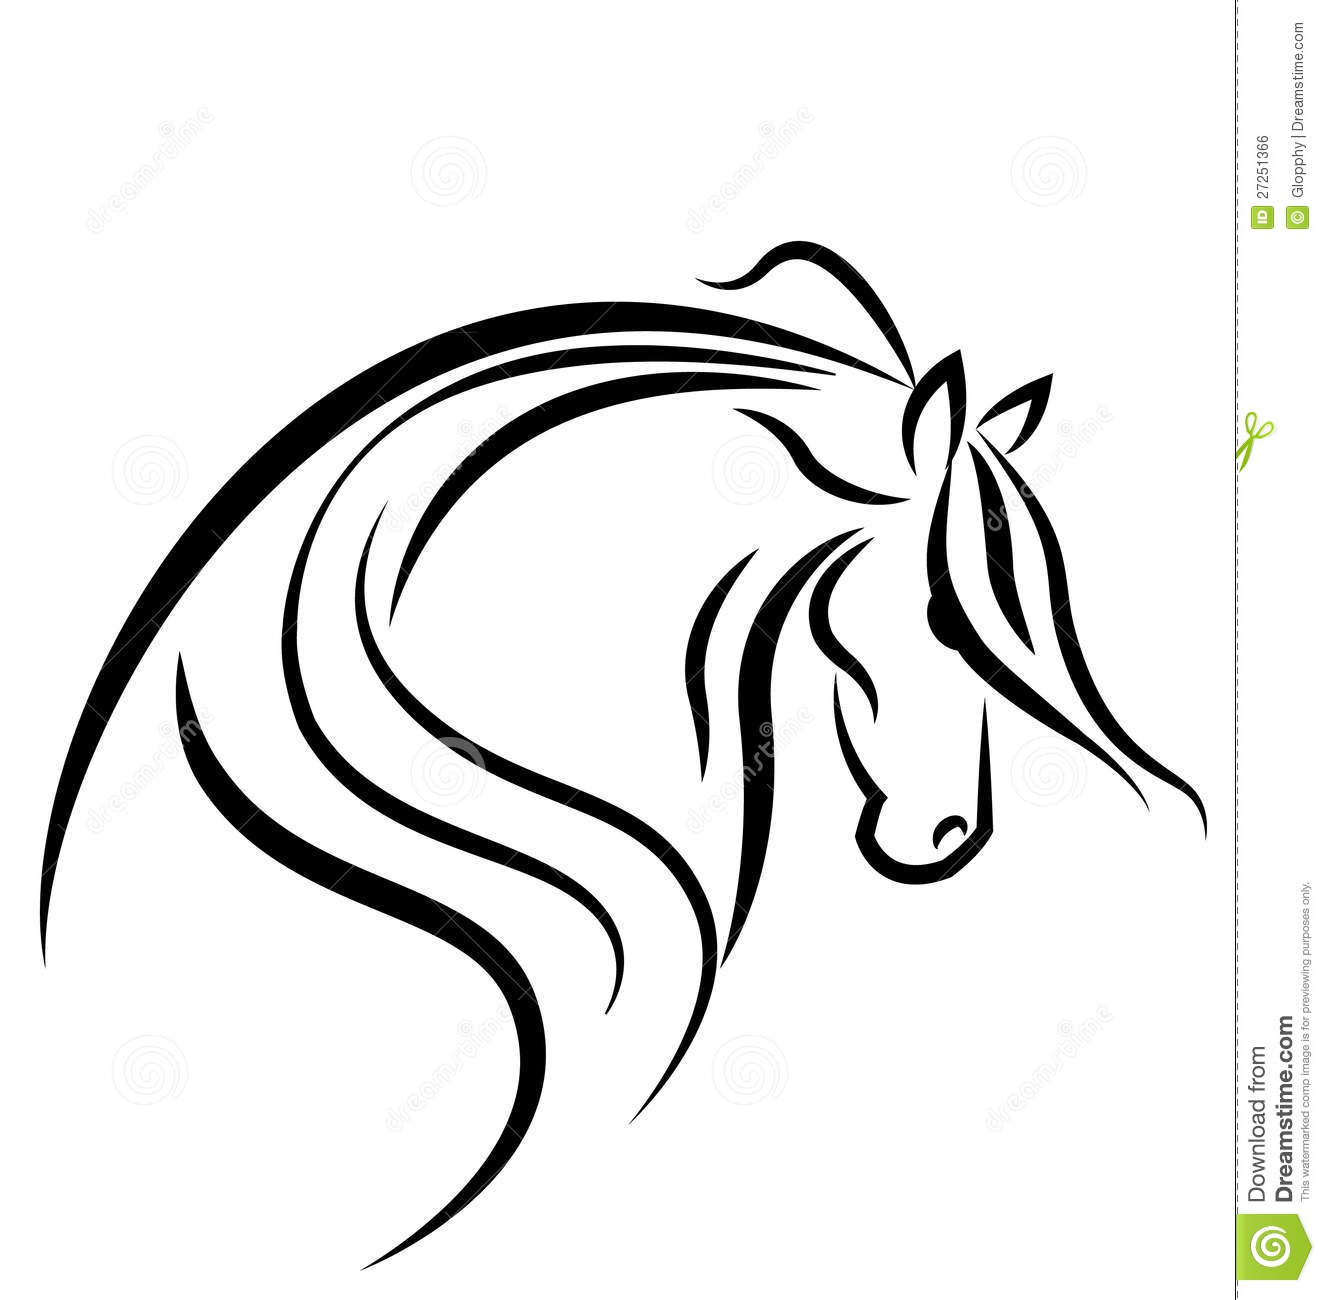 Horse Silhouette Logo Royalty Free Stock Image - Image: 27251366